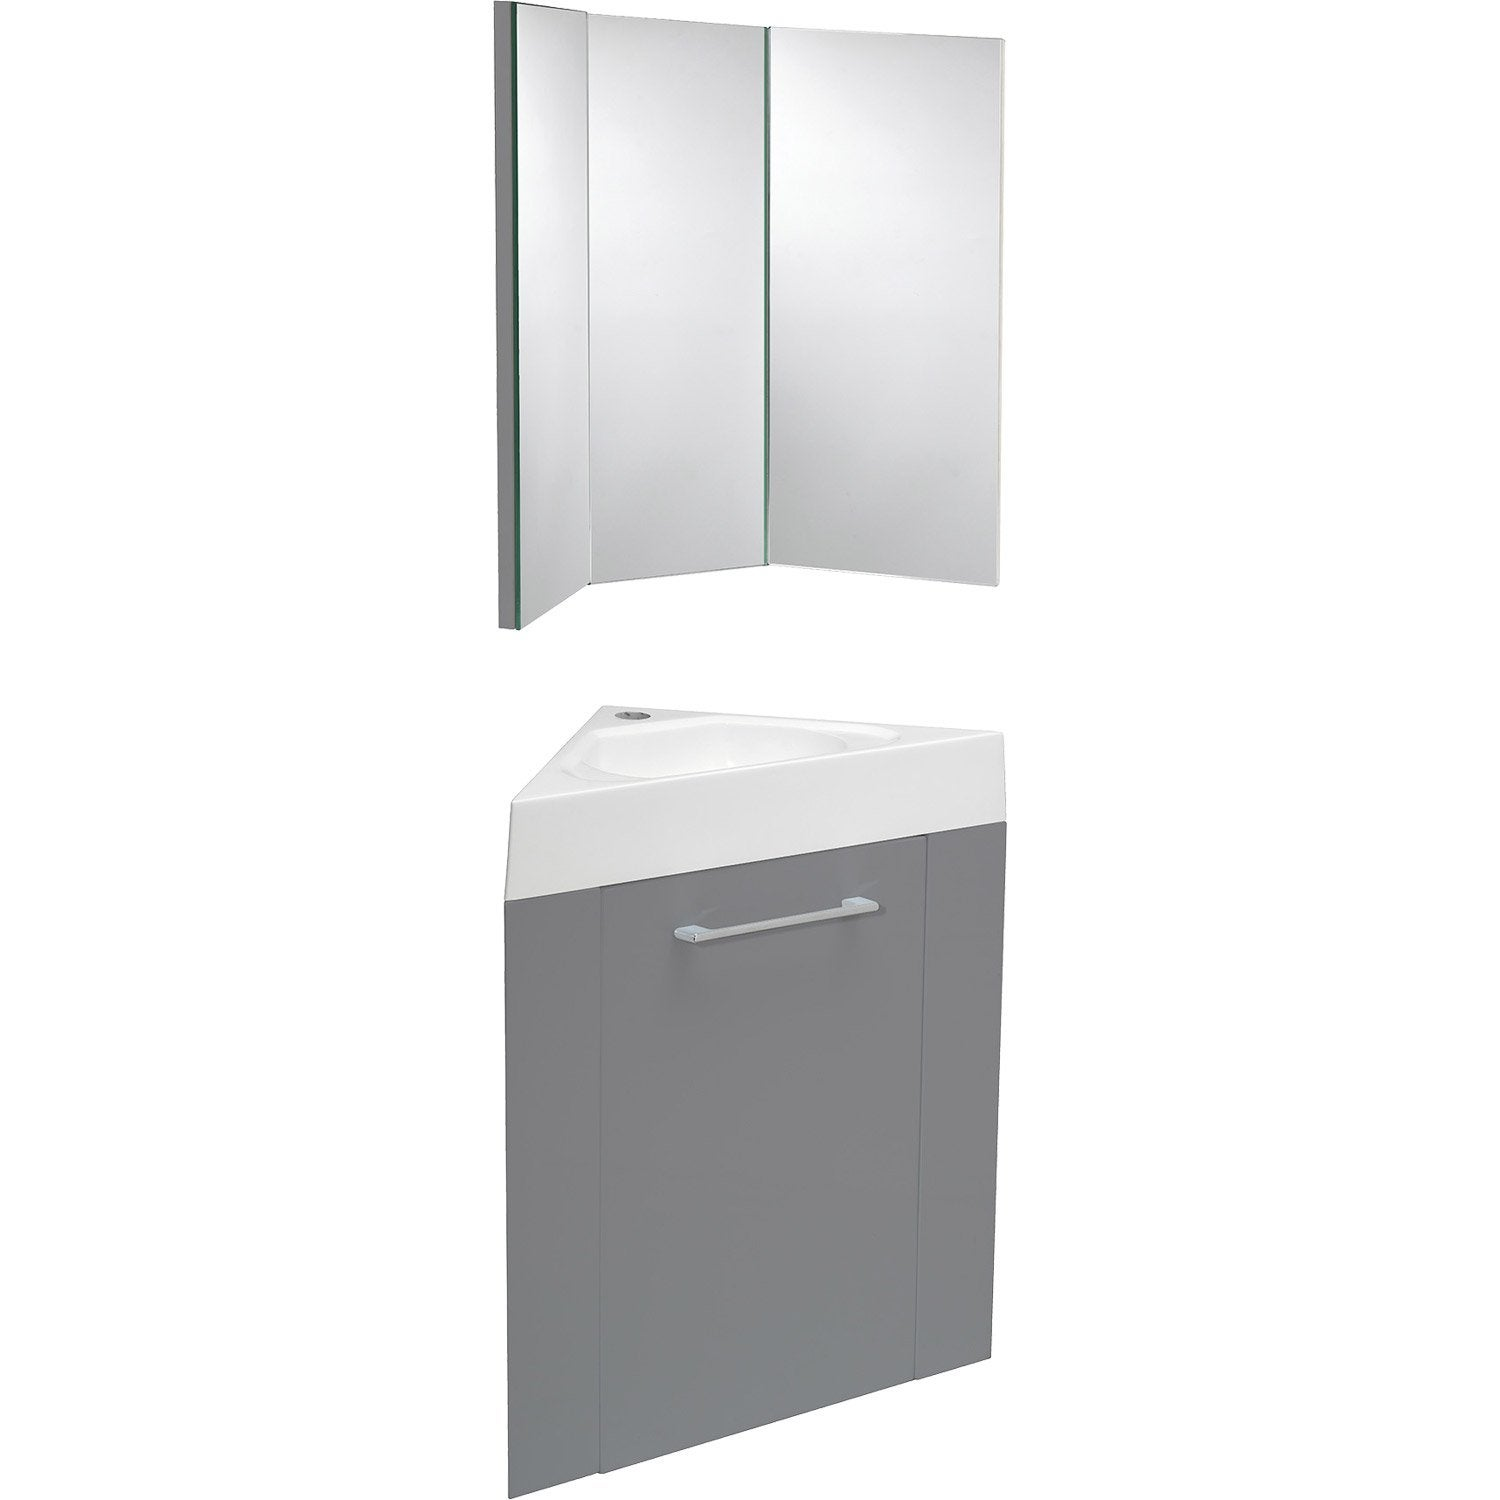 Mobilier table meuble lave mains d angle for Meuble lave main d angle wc